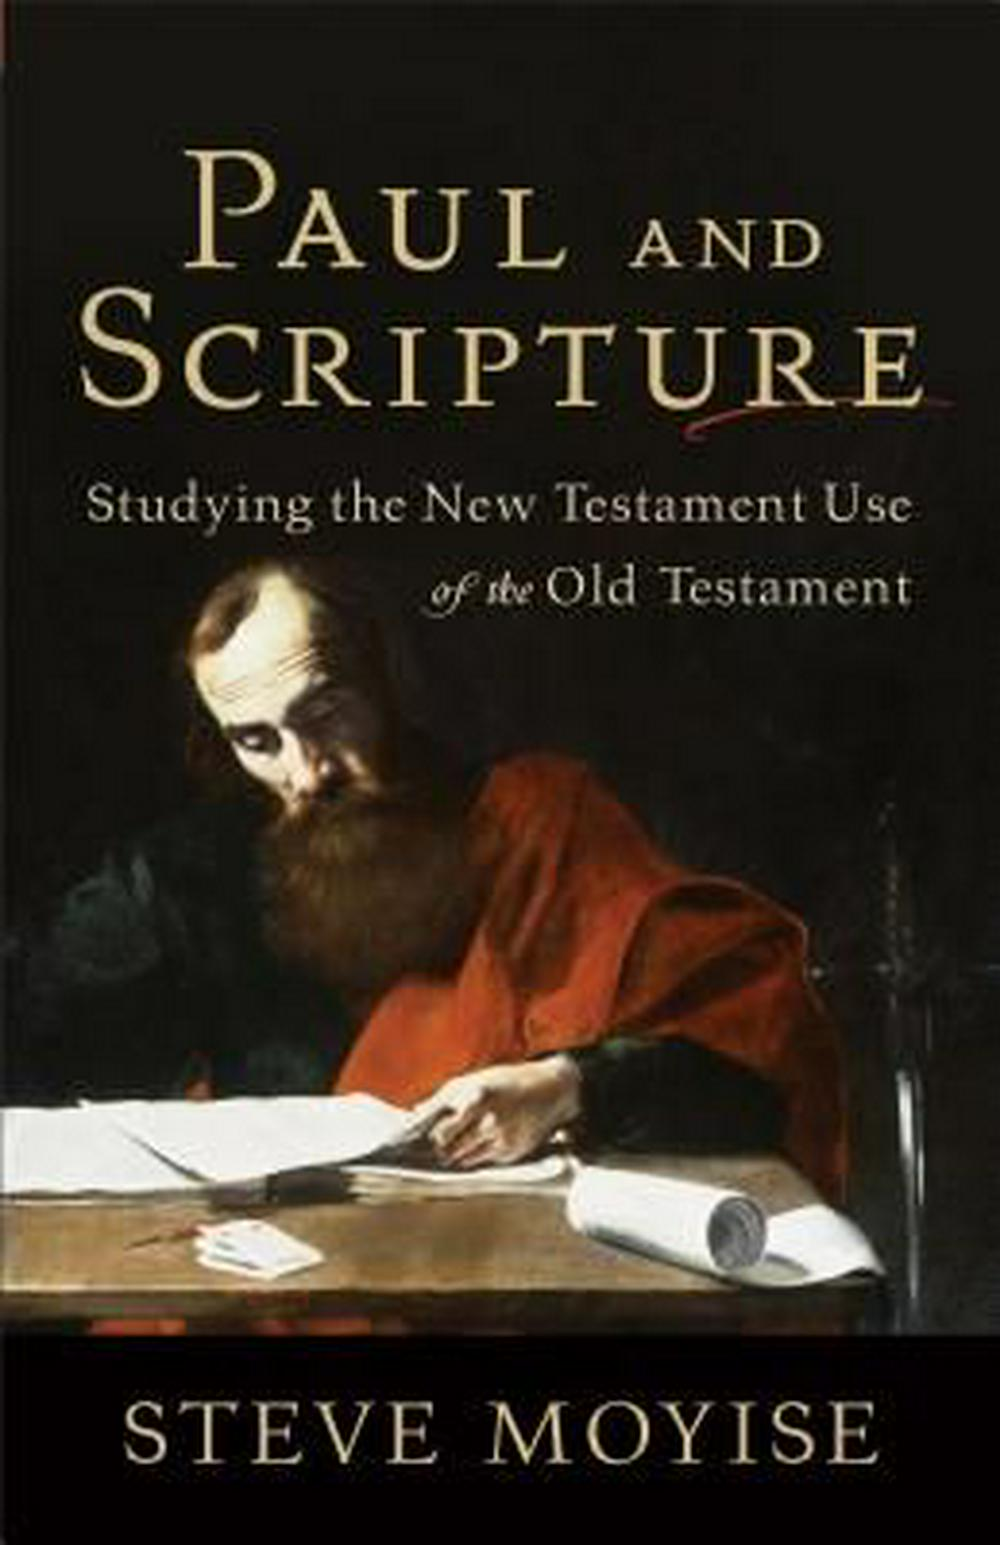 Paul and Scripture: Studying the New Testament Use of the Old Testament by Baker Publishing Group, ISBN: 9780801039249